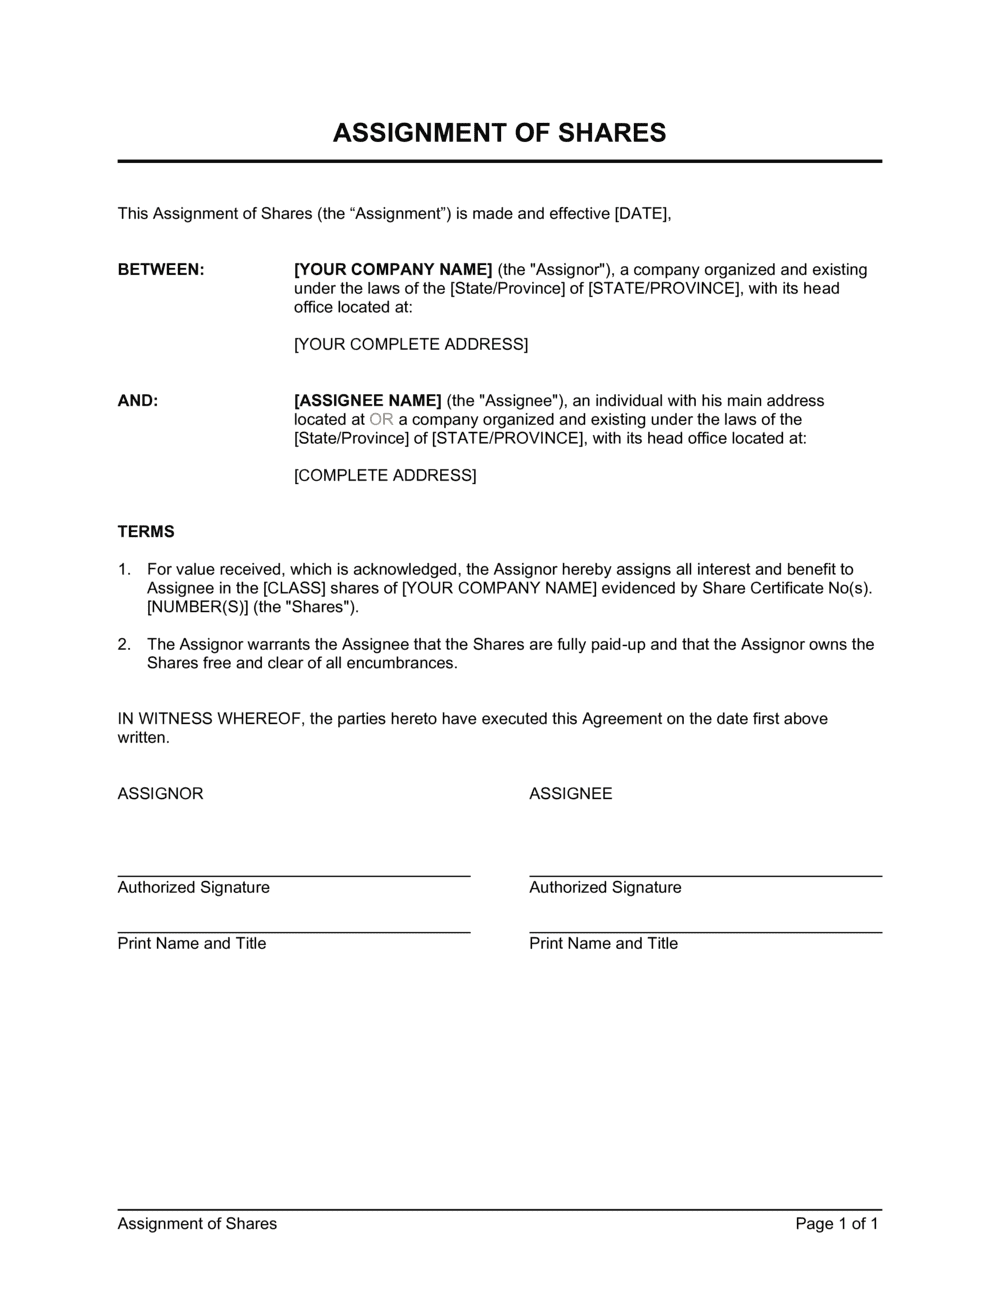 Business-in-a-Box's Assignment of Shares Template